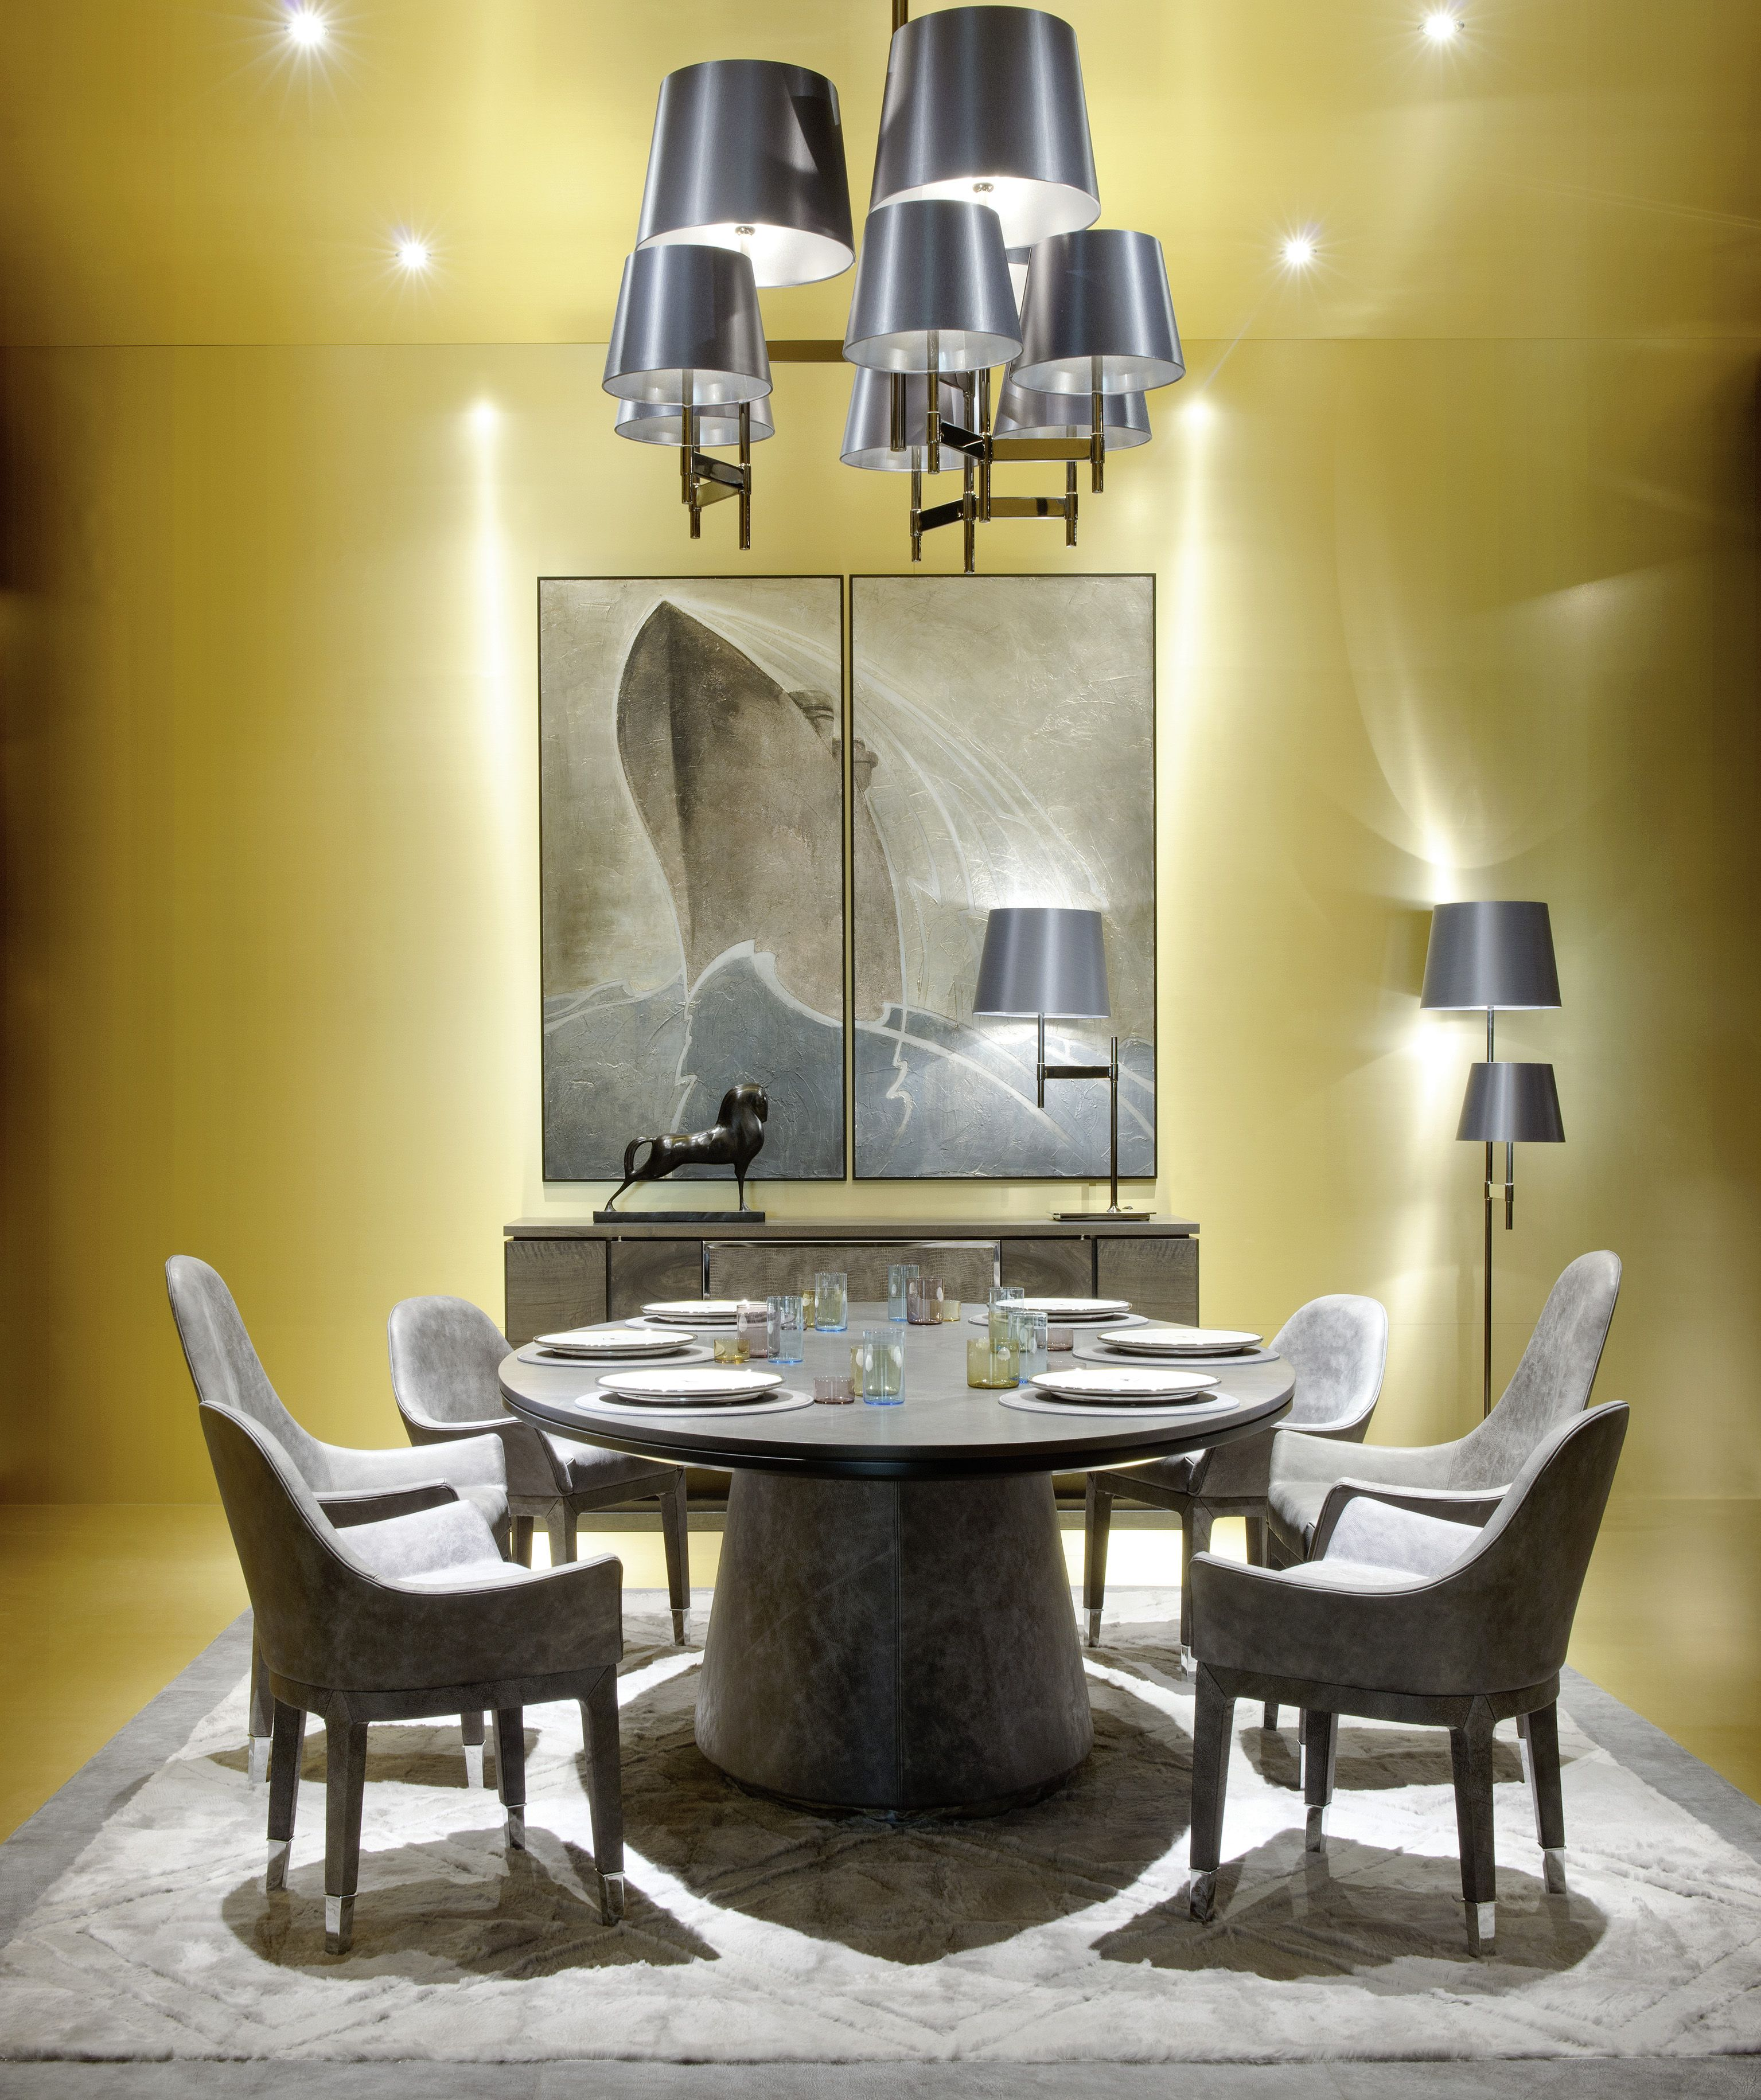 Daytona Oval High Table Manta High And Low Chairs In Grey Africa Leather Contemporary Furniture Design Furniture Design Furniture